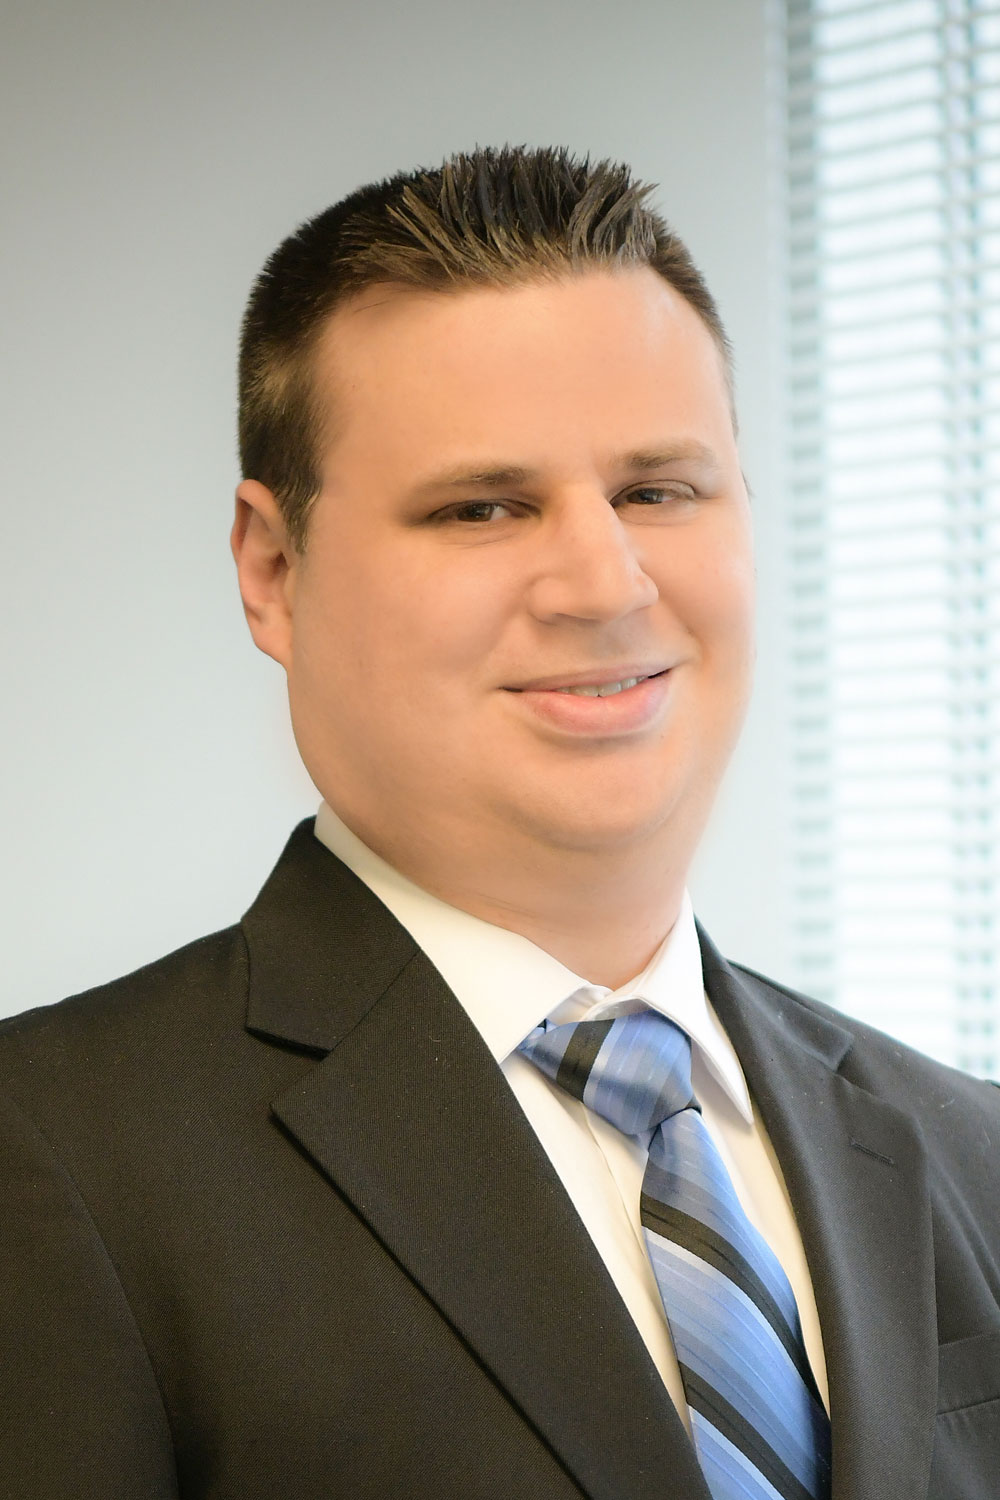 <b>ANTHONY FAZIO</b><br>Account Manager